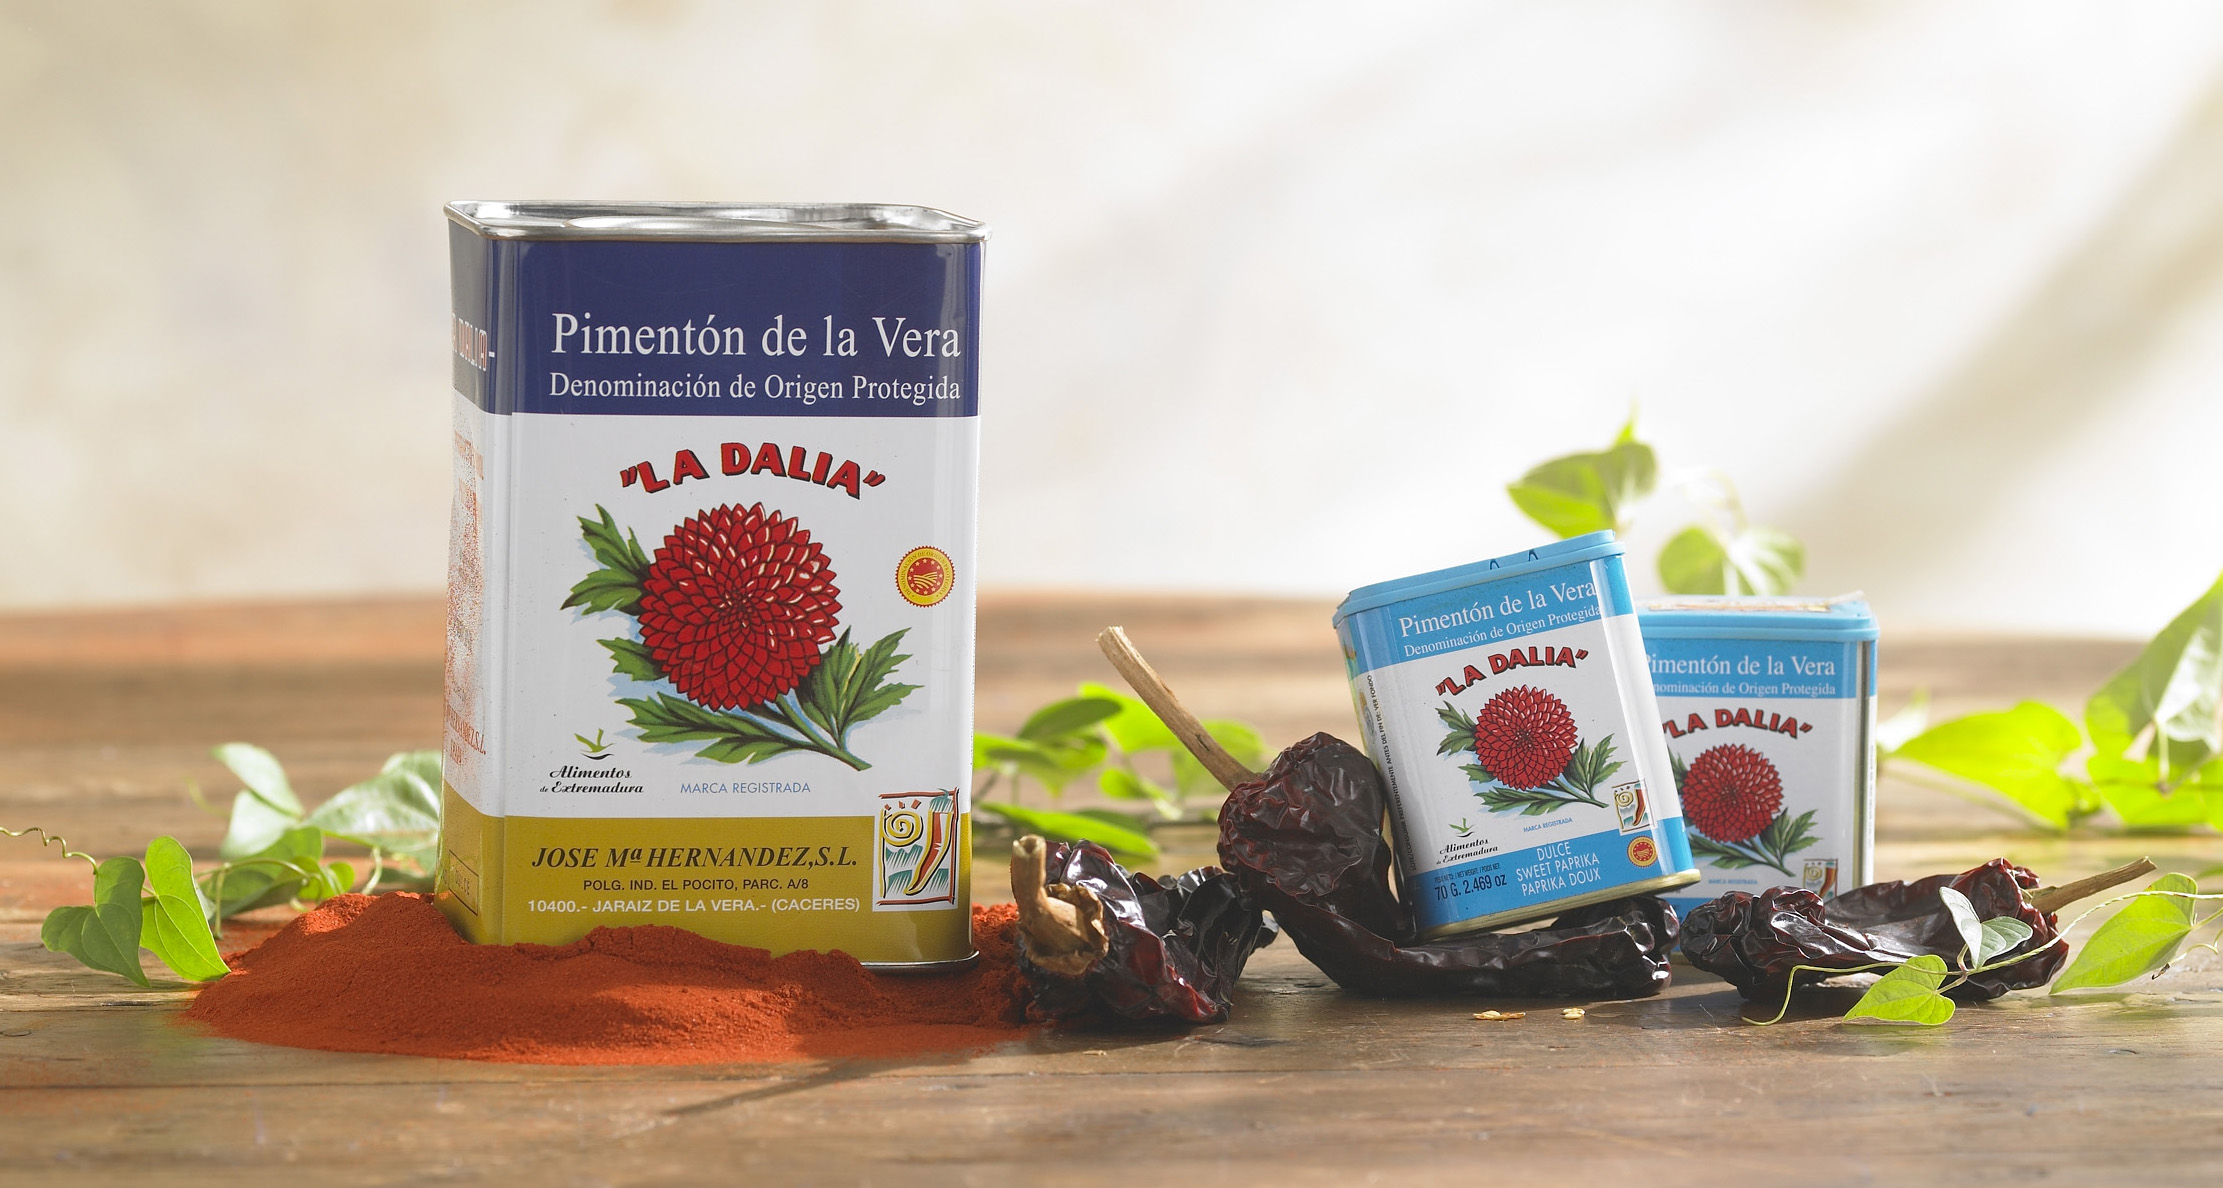 La Dalia brand pimentón was the first to gain the coveted status of Denomination of Origin, a guarantee of quality and consistency.